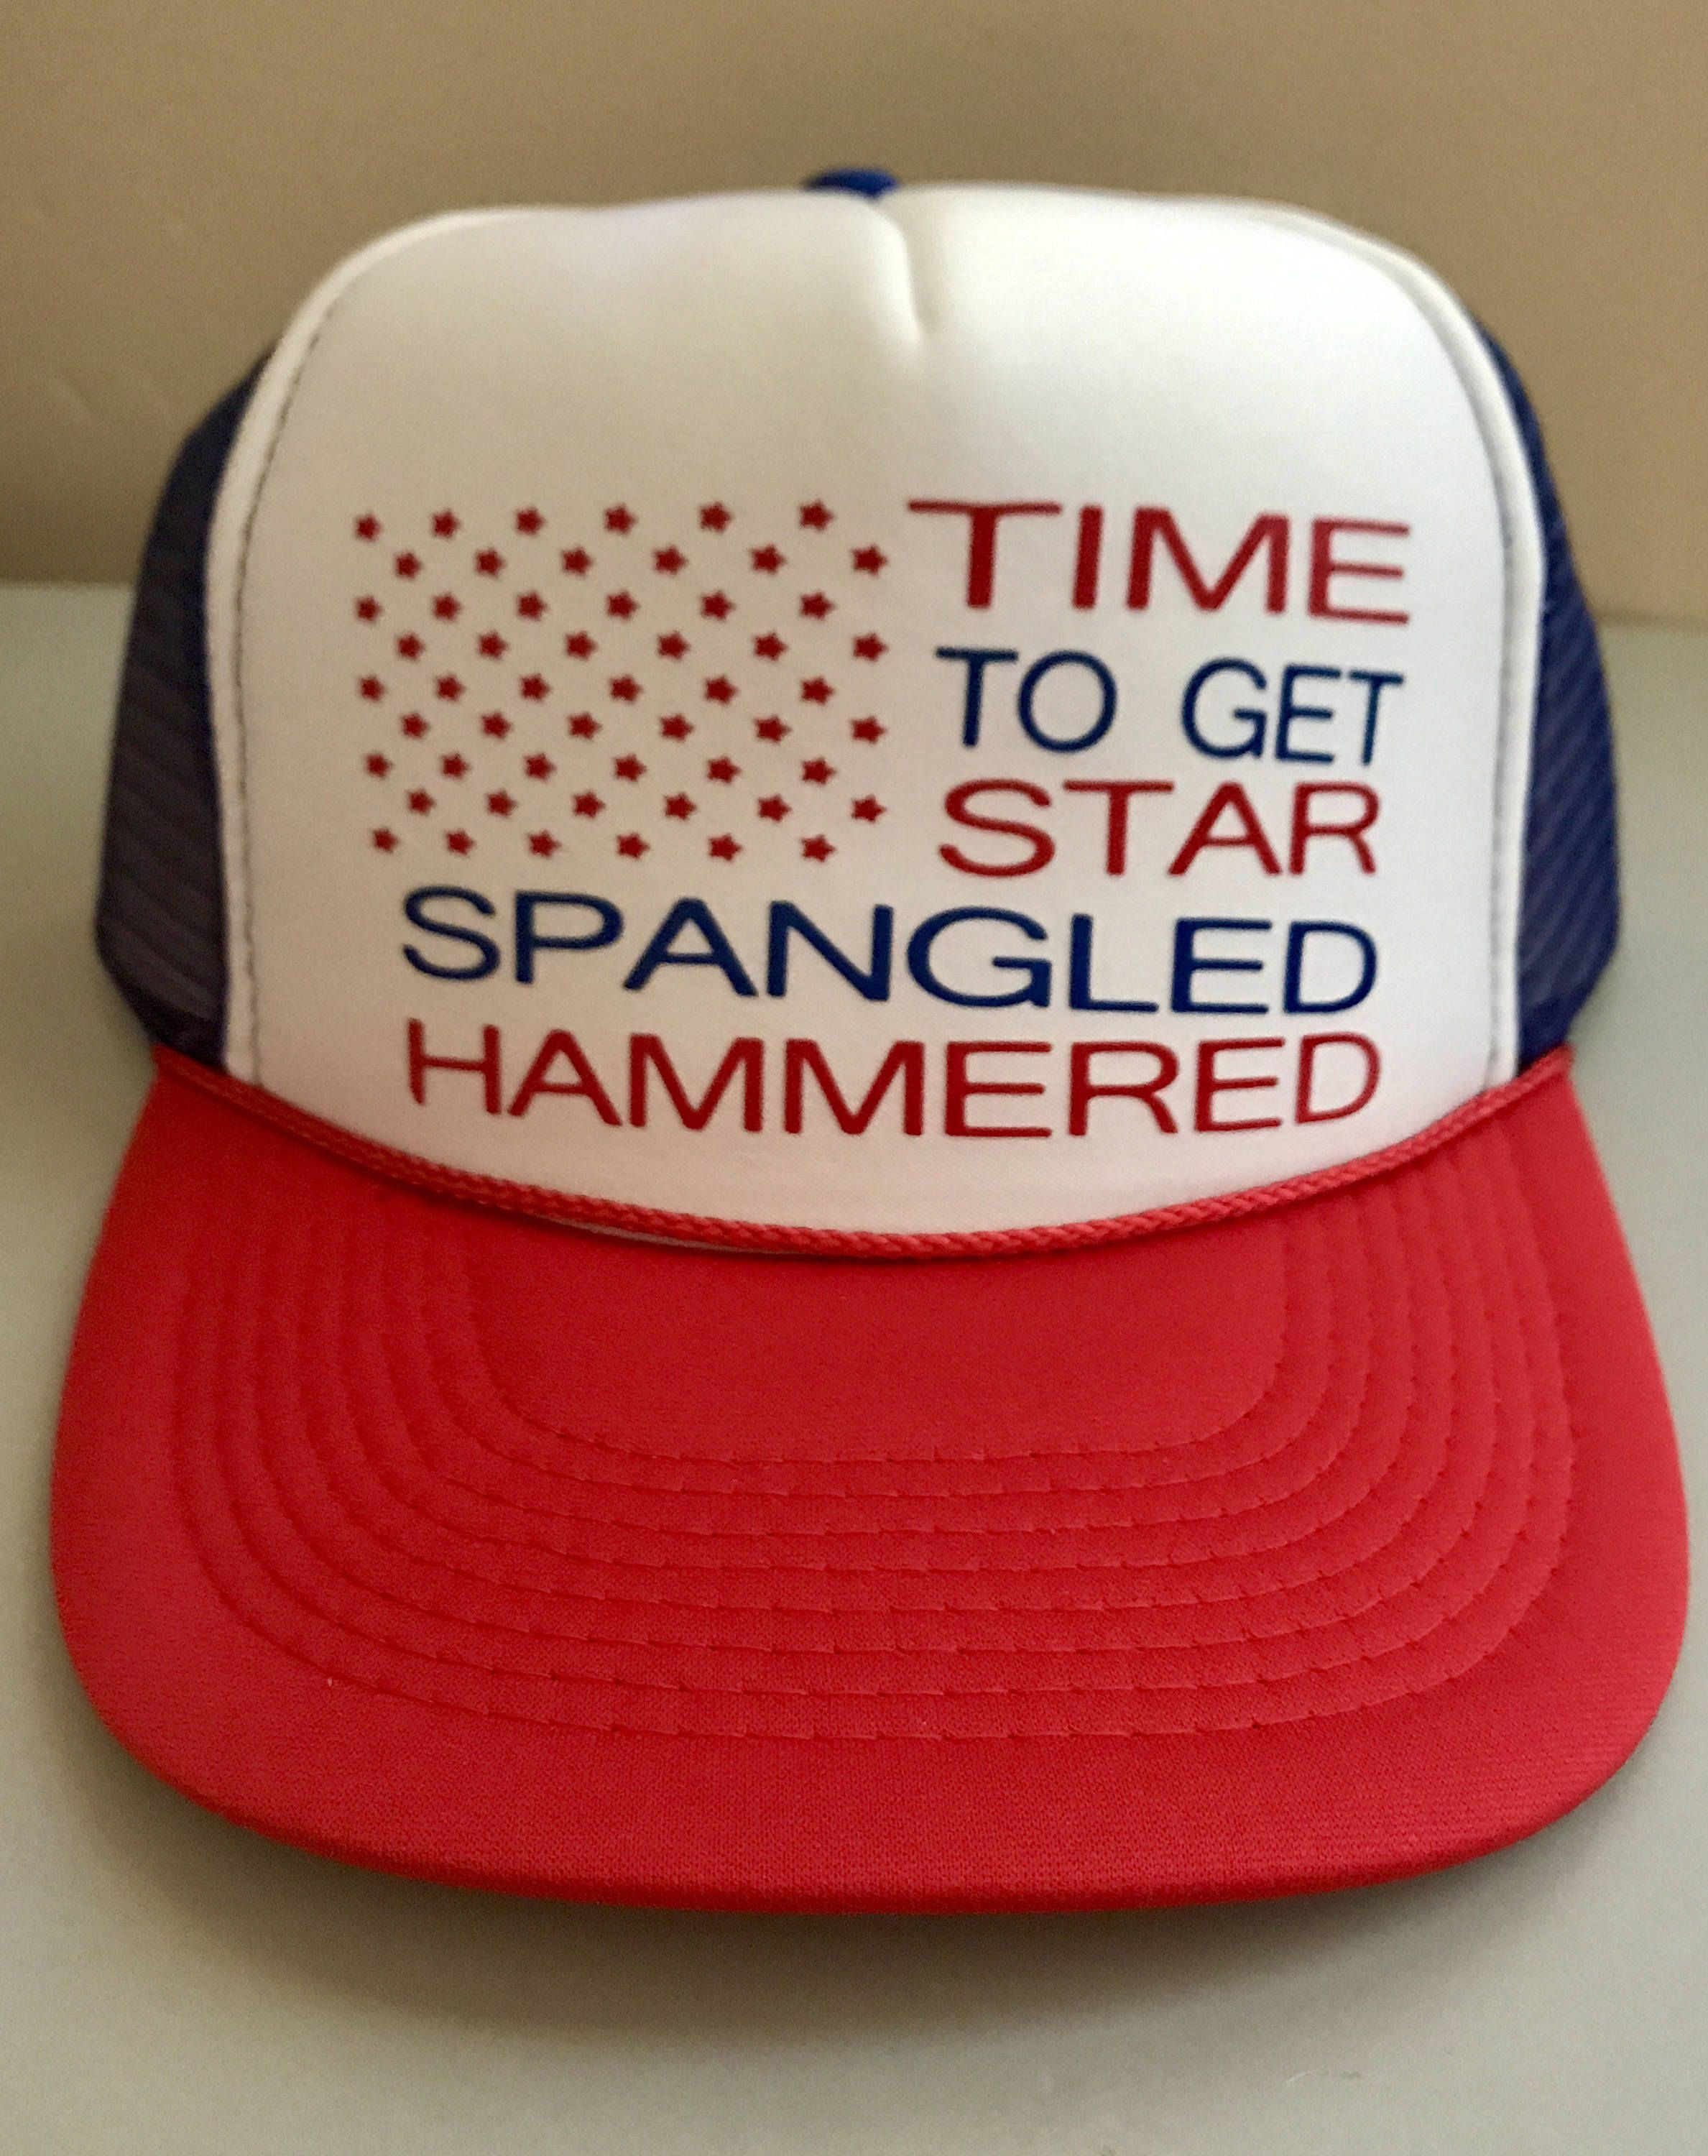 Time To Get Star Spangled Hammered Trucker Hat Snapback Hat USA Trucker Hat  4th of July Trucker Hat Patriotic Hat Drinking Hat Lake Hat 0ee8886d7d38